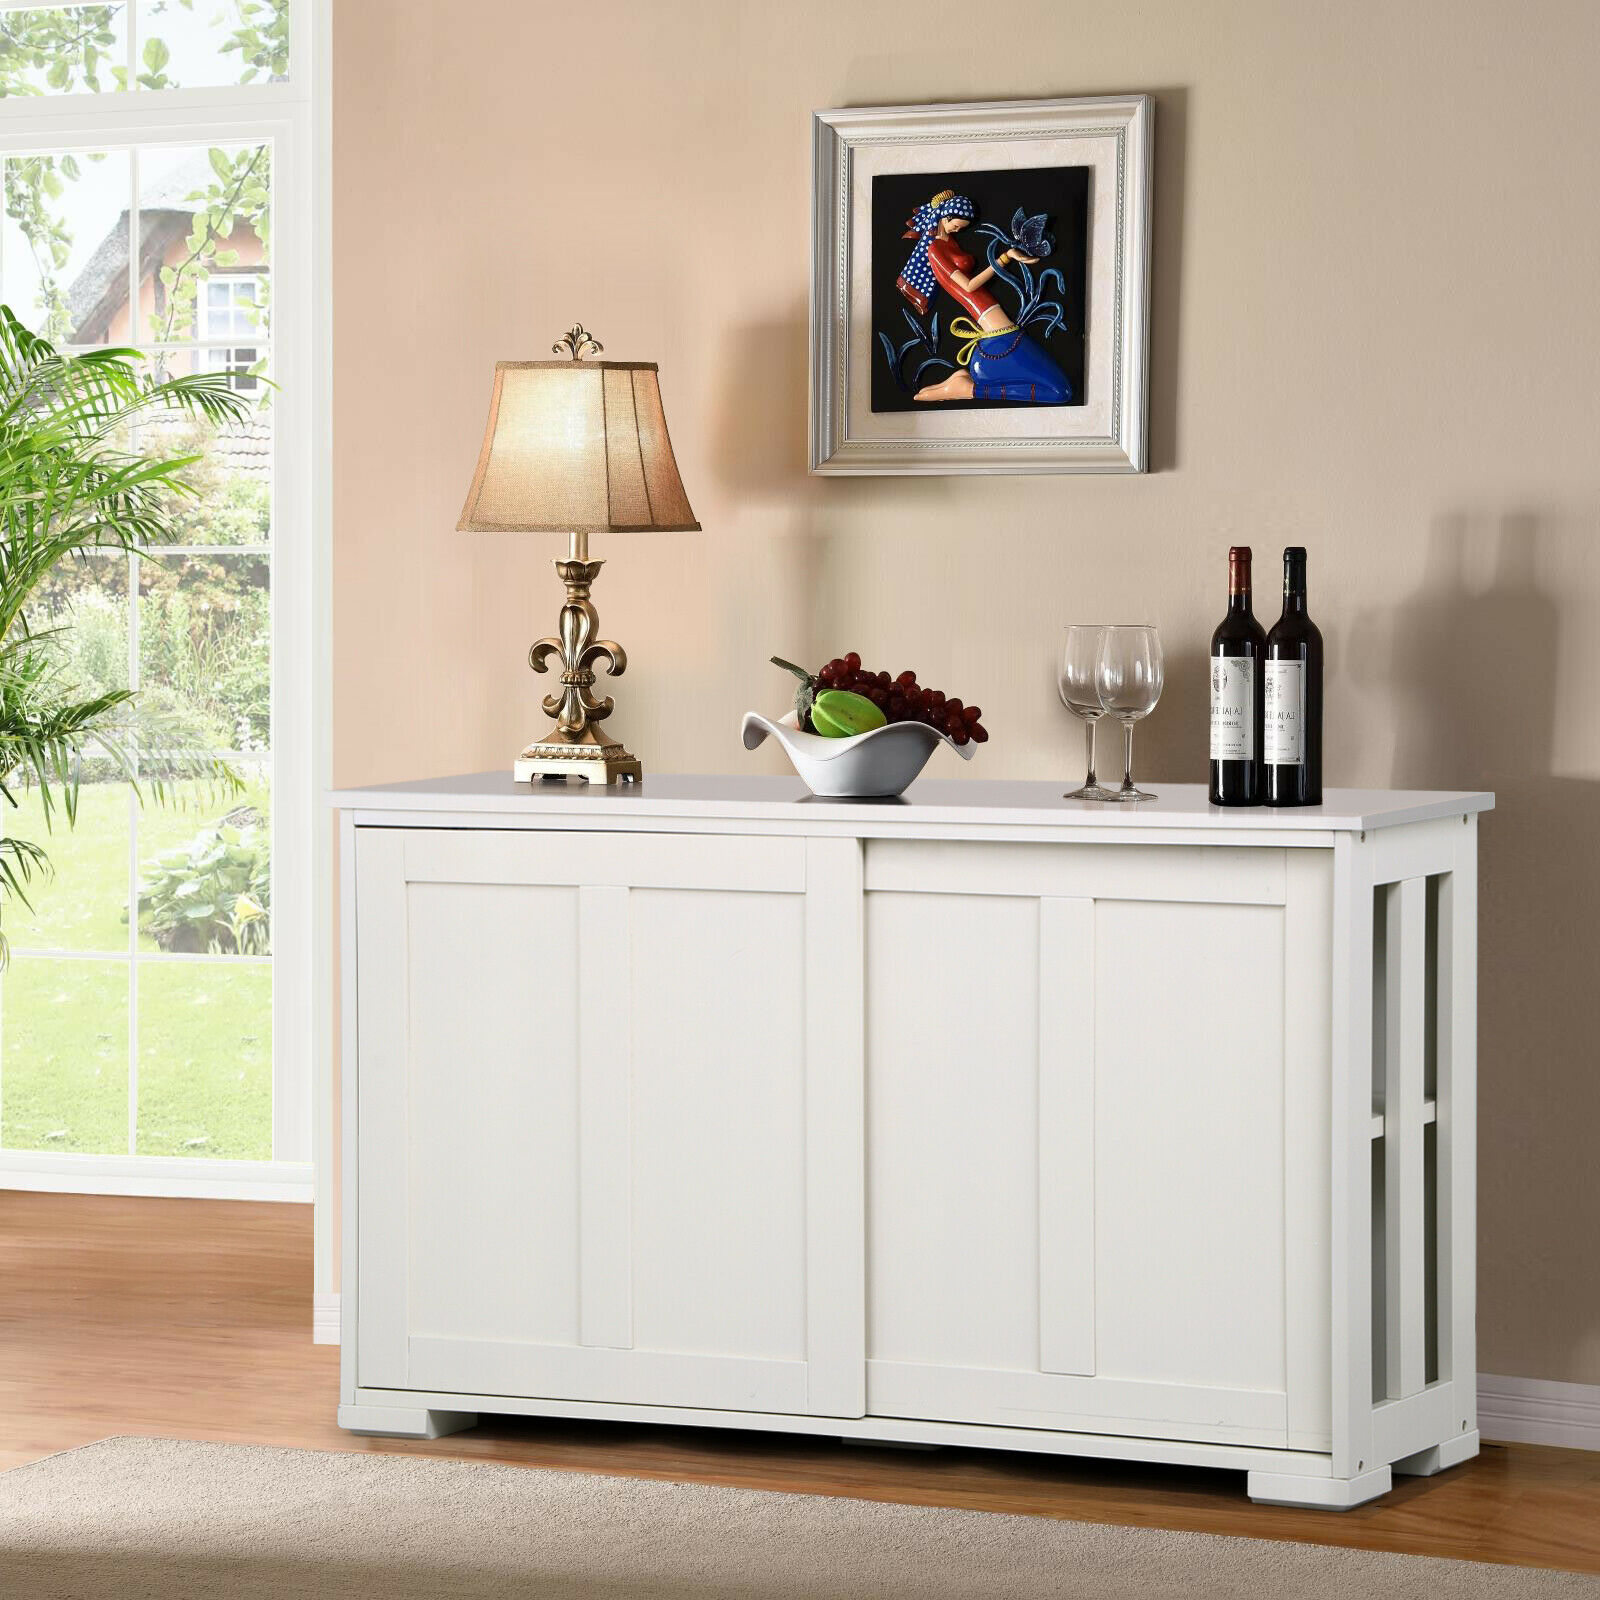 Details About Antique White Buffet Cabinet Kitchen Table Sliding Door Stackable Sideboard Stor Within Glass Sliding Door Stackable Buffets (Gallery 10 of 30)